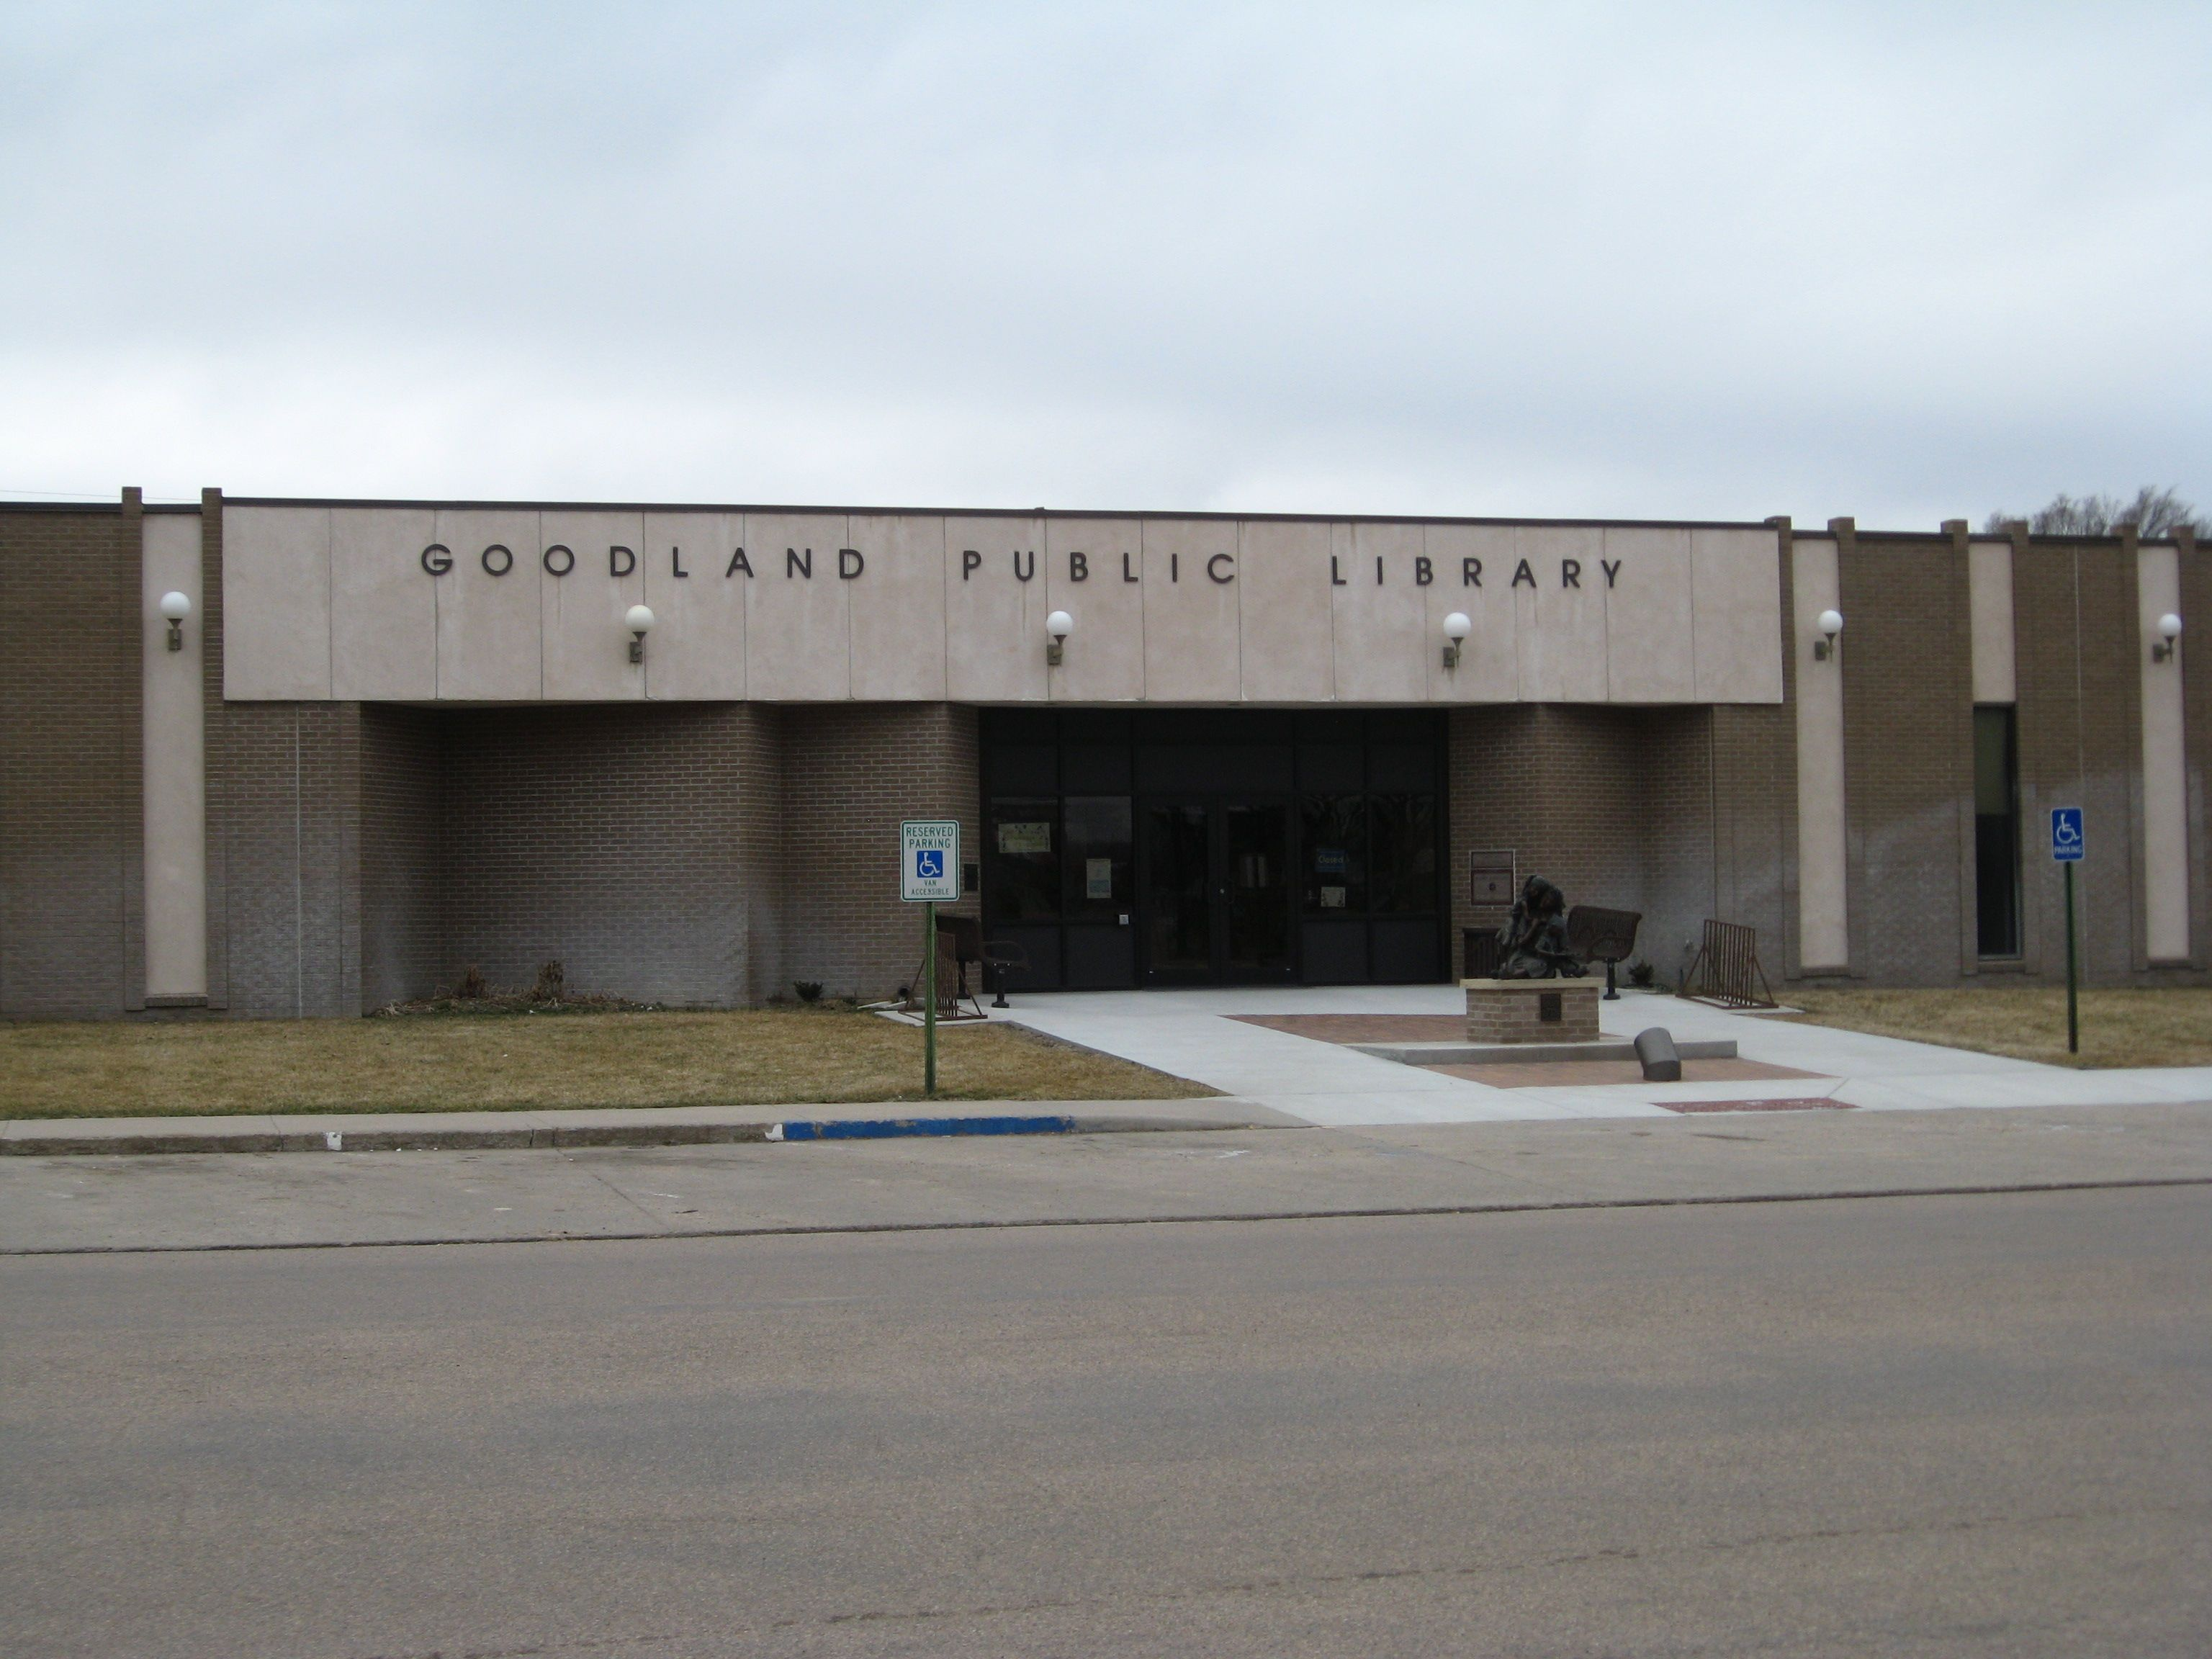 Goodland Public Library in Goodland, Kansas